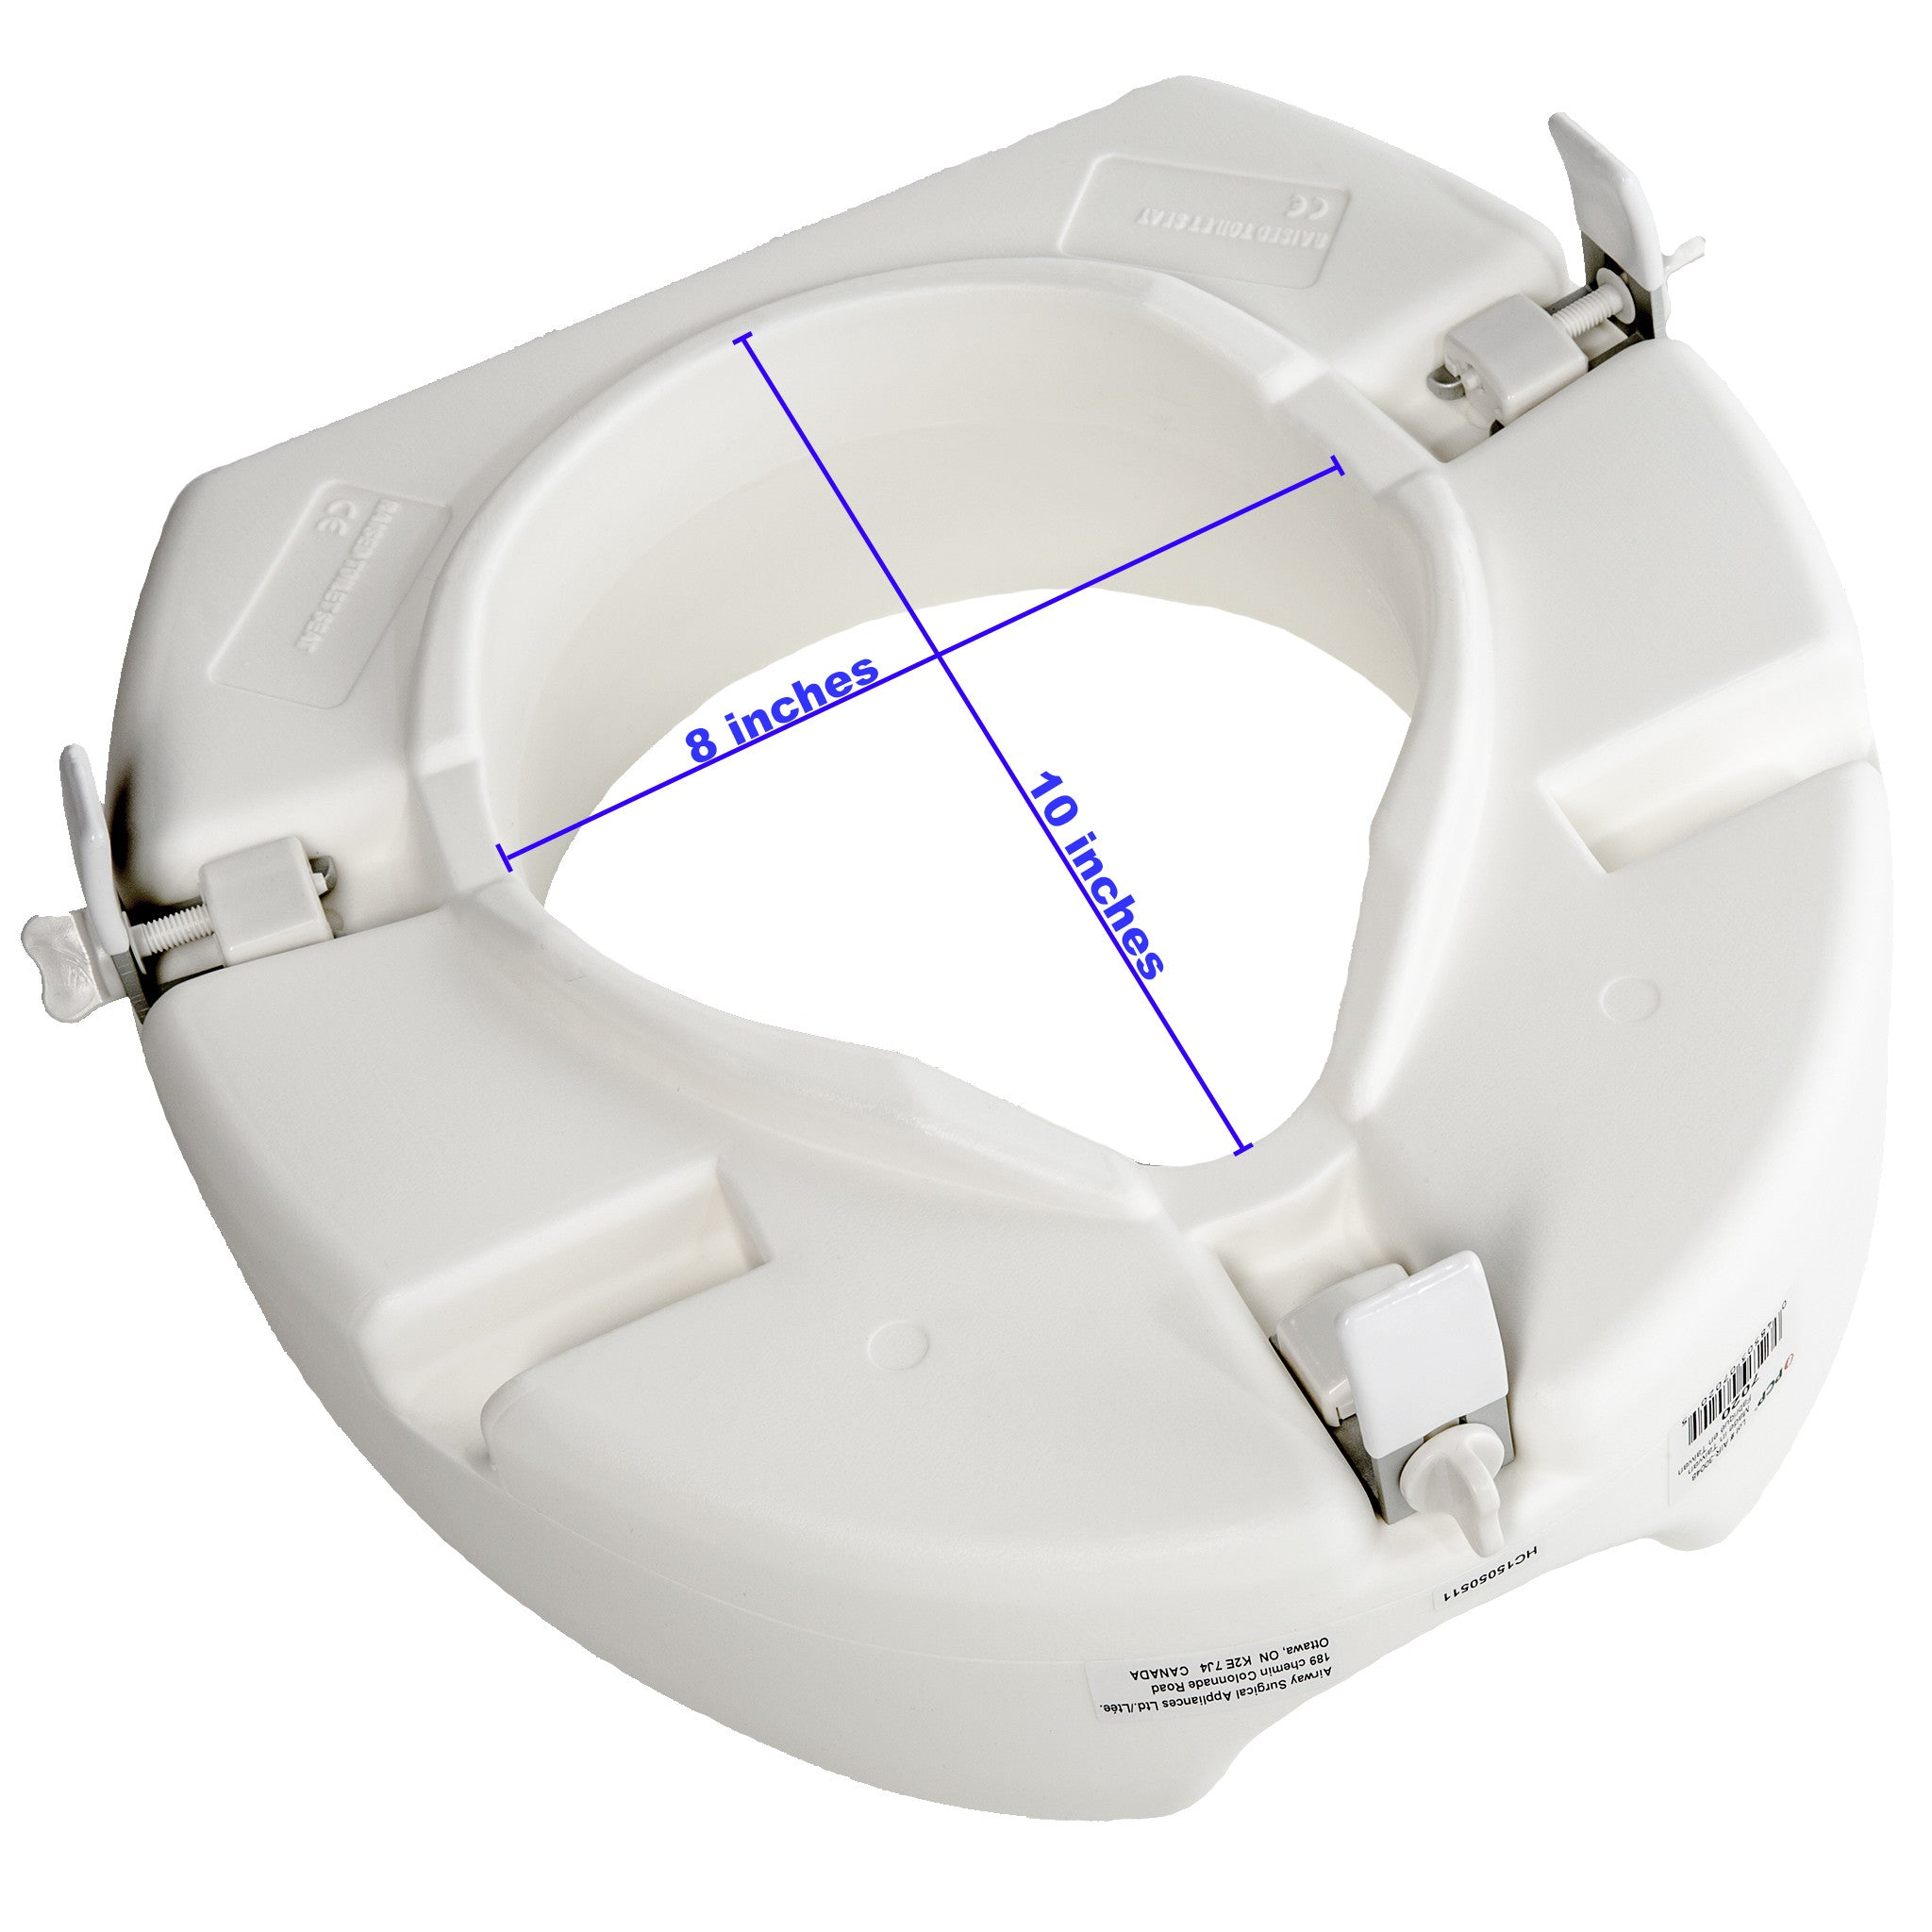 Universal Toilet Seat Riser 5 Inches Home Medical Supply